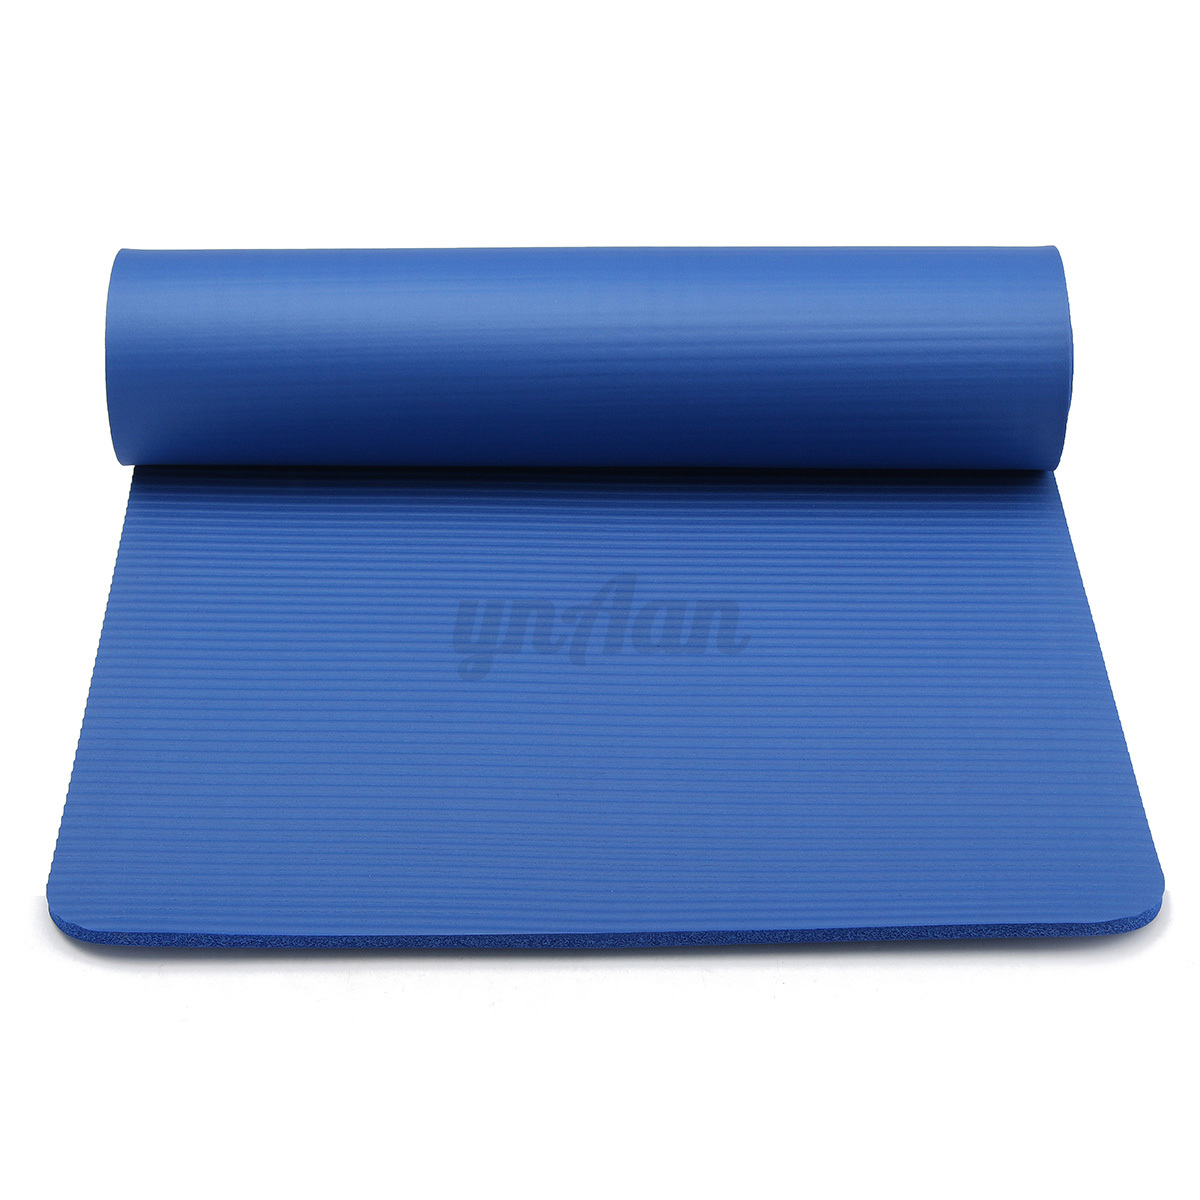 Non Slip 10mm Thick Exercise Fitness Physio Pilates